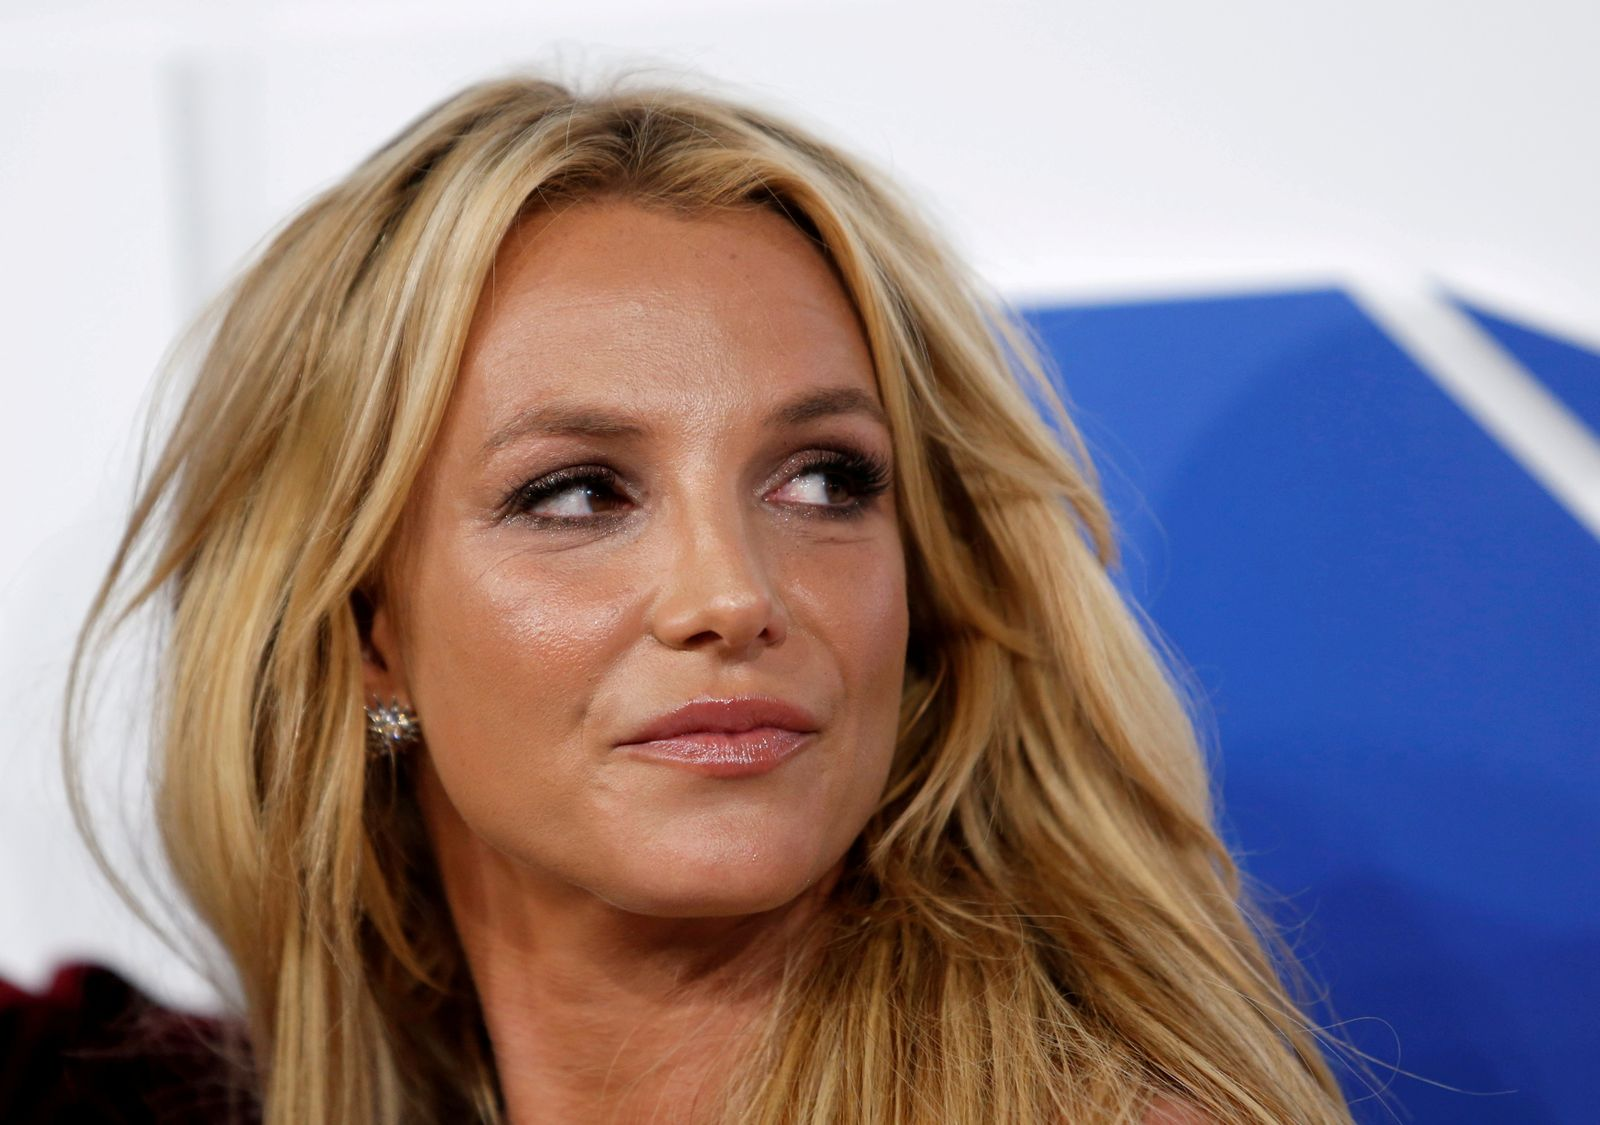 FILE PHOTO: Britney Spears arrives at the 2016 MTV Video Music Awards in New York